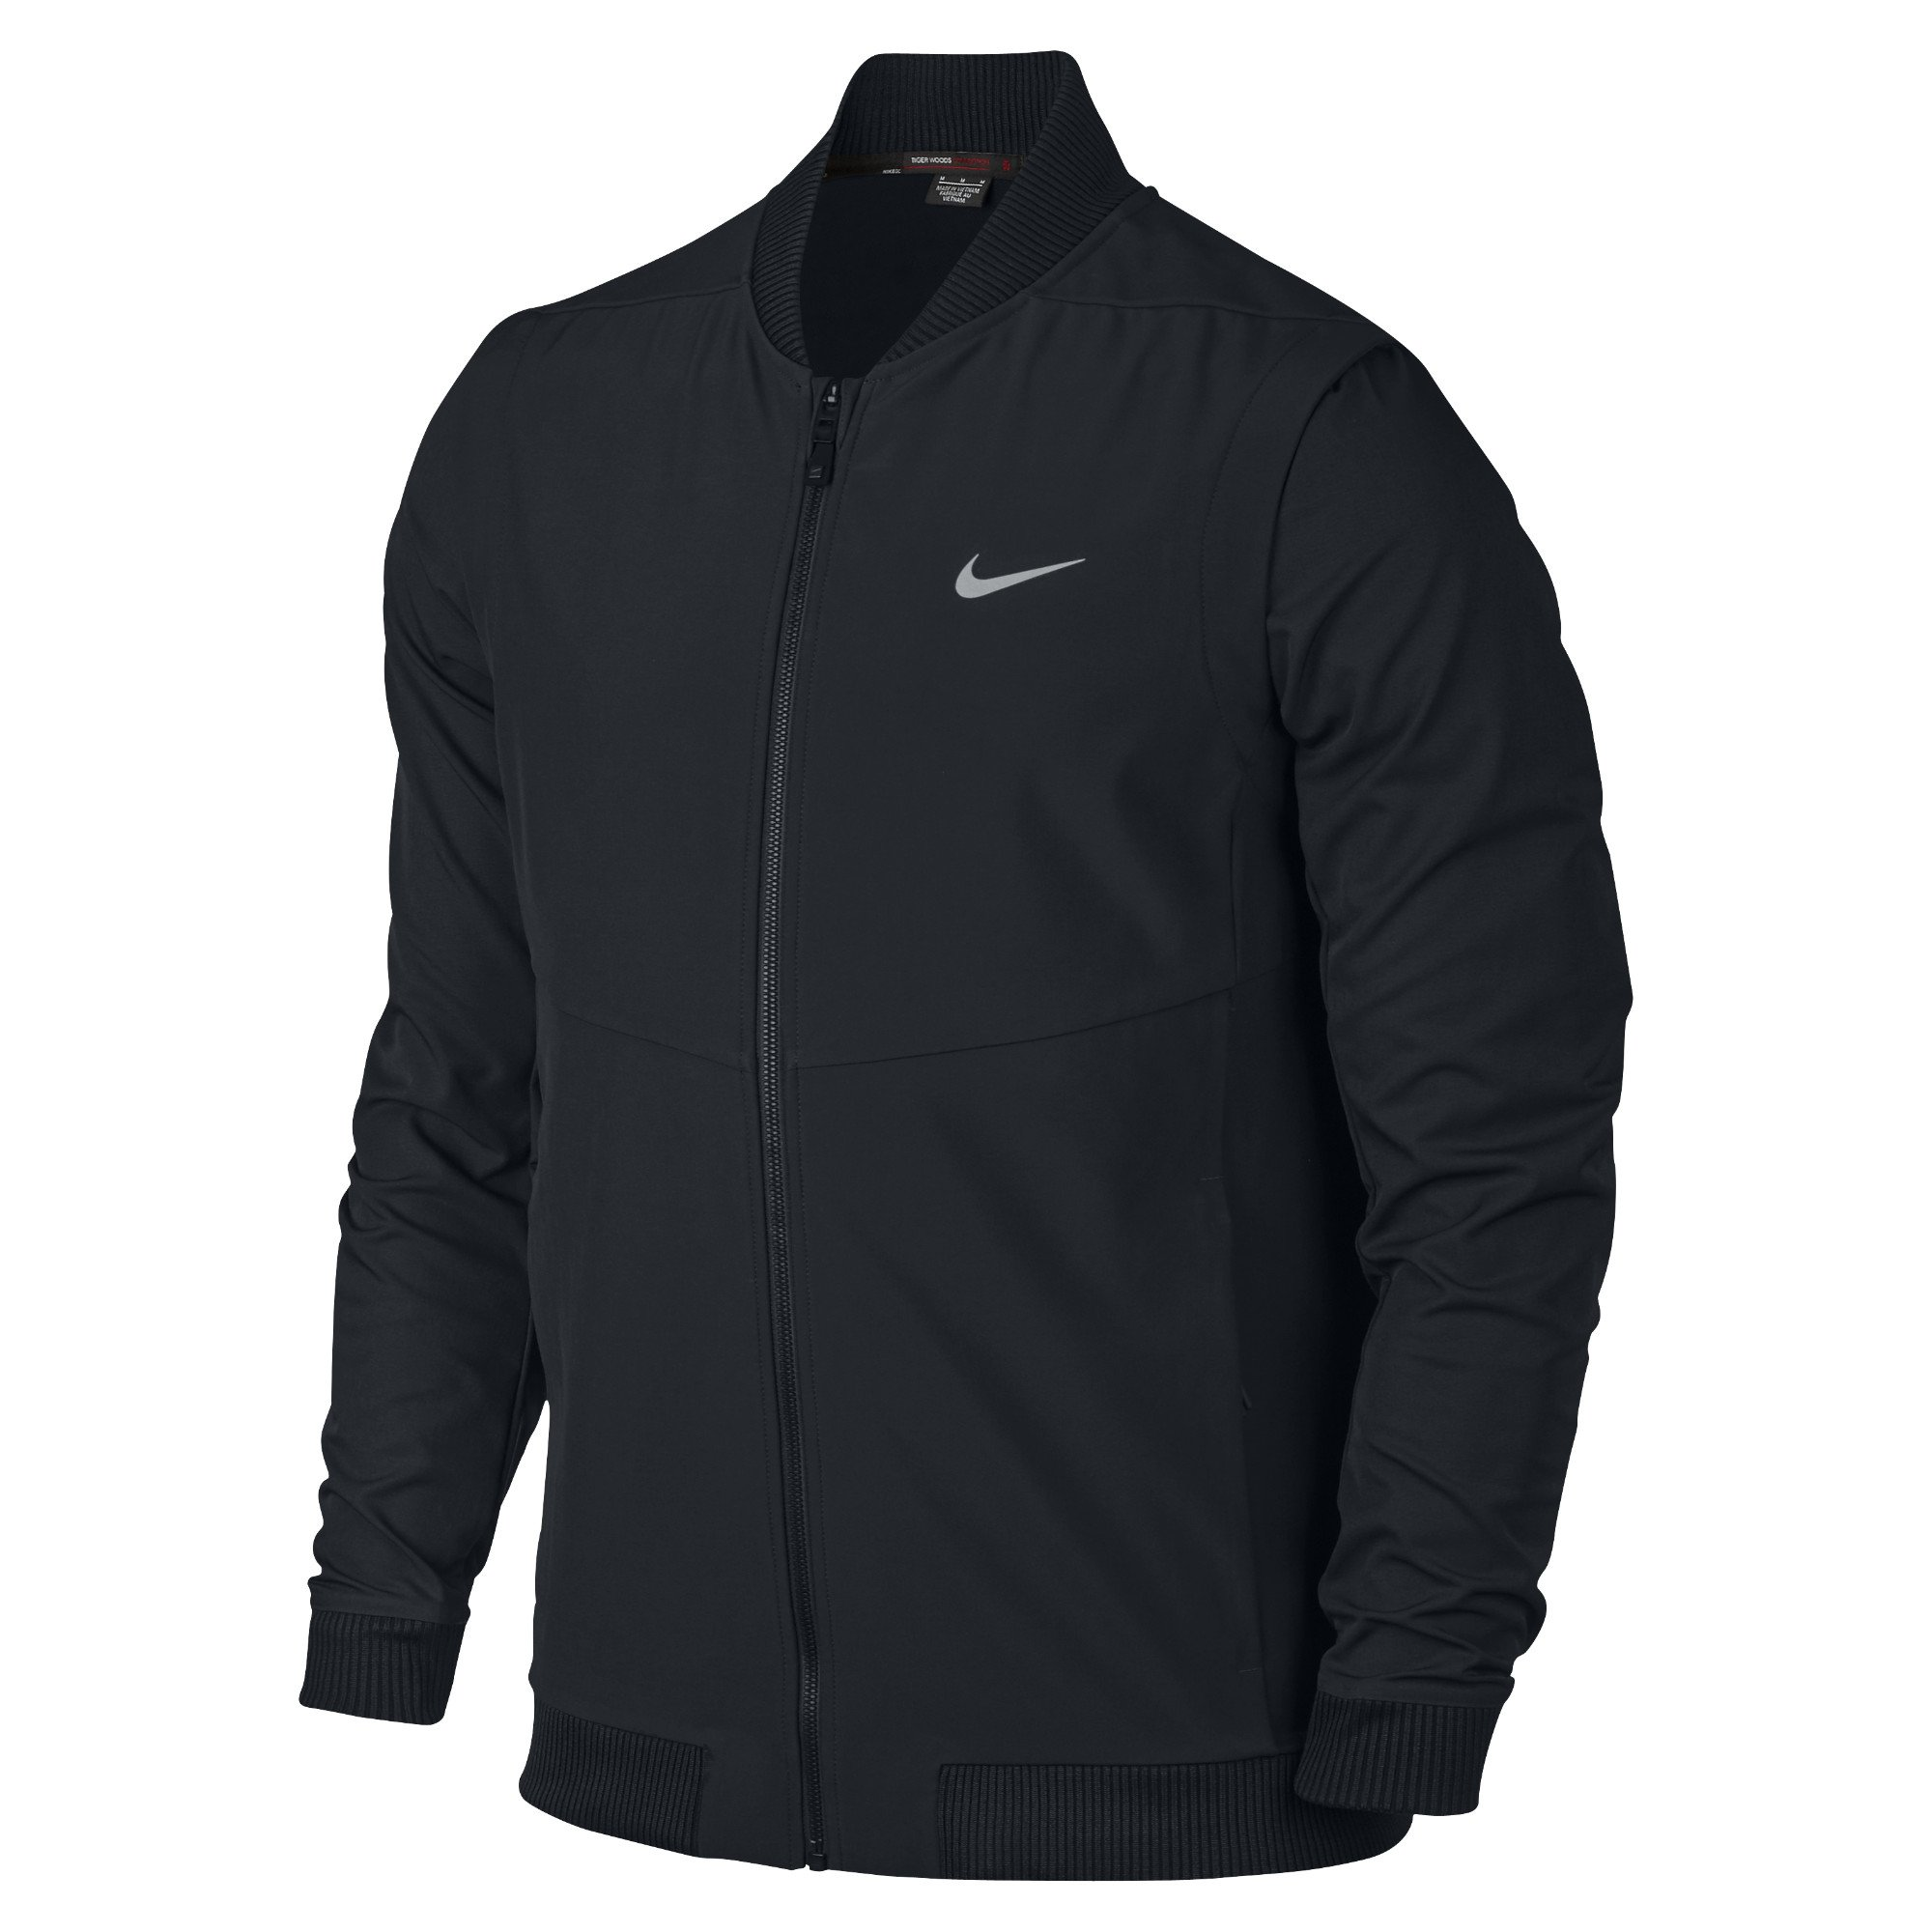 Nike TW (Tiger Woods Collection) Hyperadapt Men's Golf Bomber Jacket (Small, Black/Flat Silver) by Nike (Image #1)